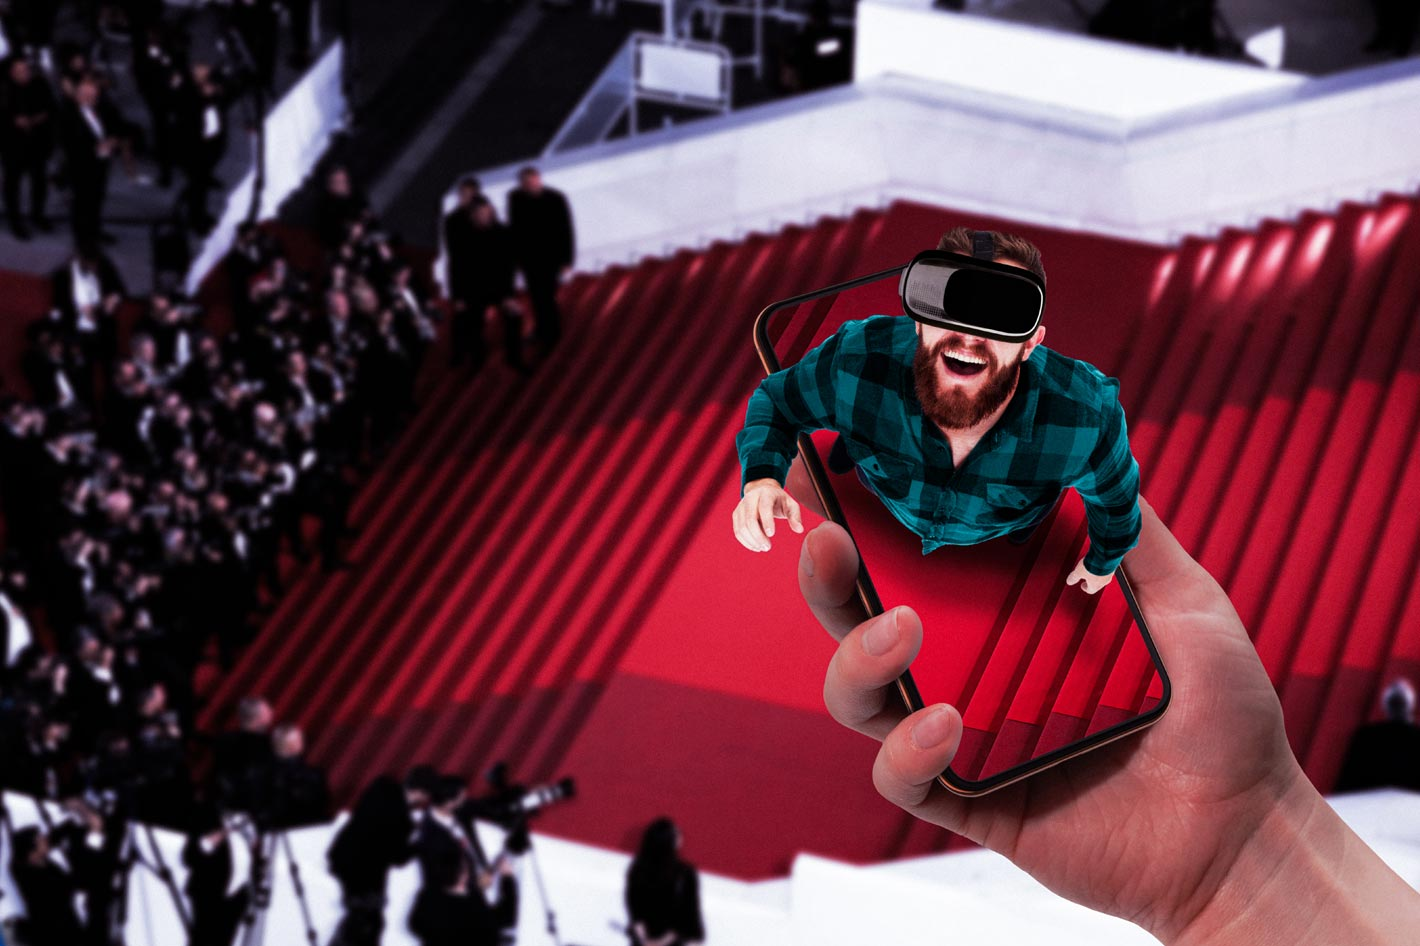 55 XR works presented at the first Cannes XR Virtual